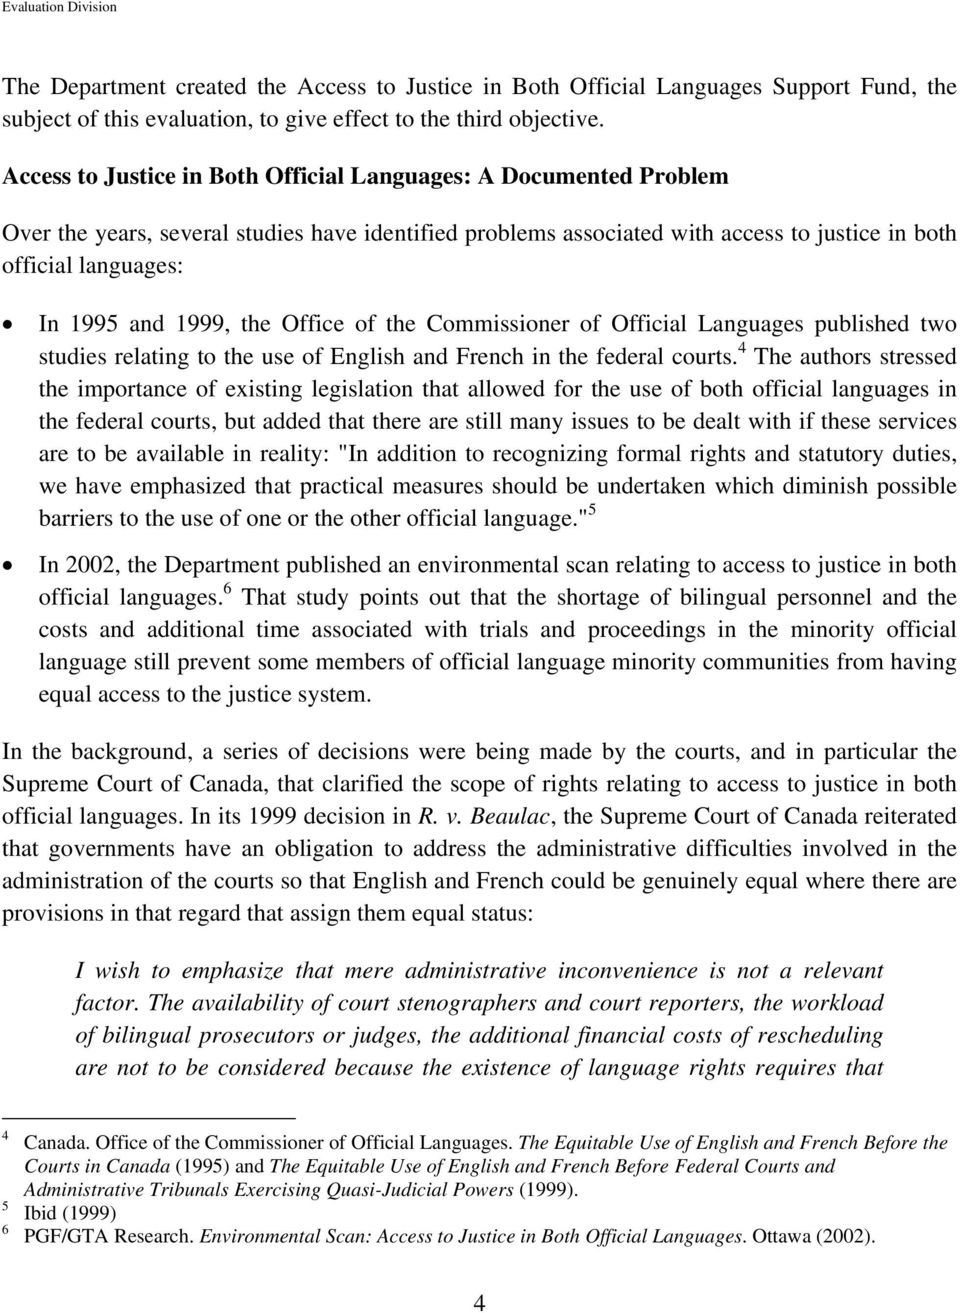 1999, the Office of the Commissioner of Official Languages published two studies relating to the use of English and French in the federal courts.